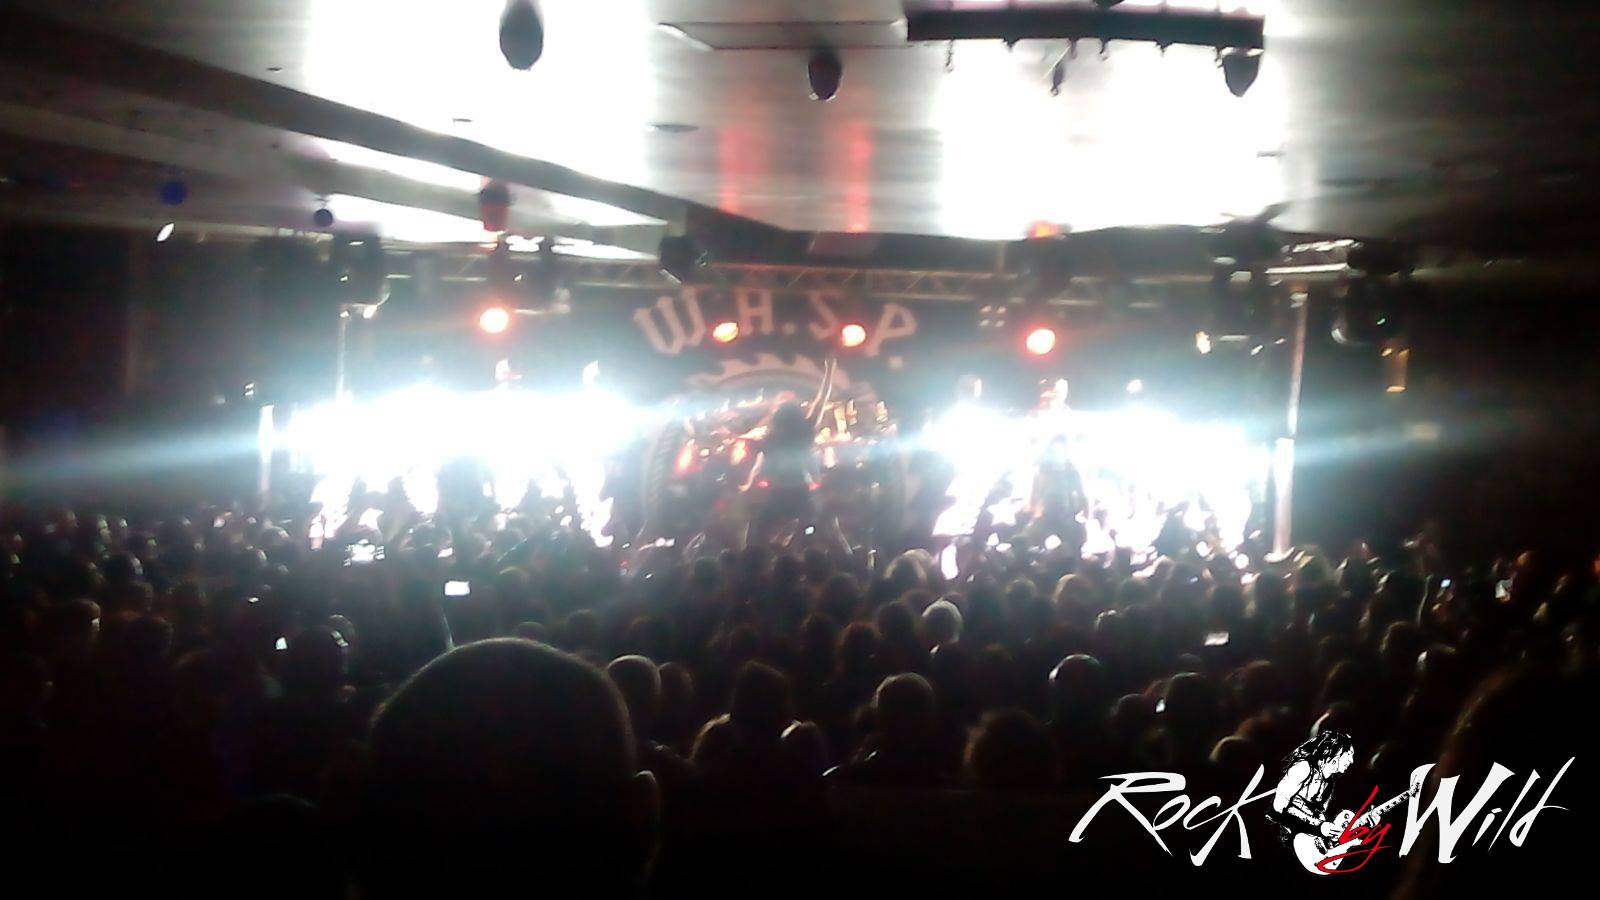 W.A.S.P. @ Orion - 04 11 2015